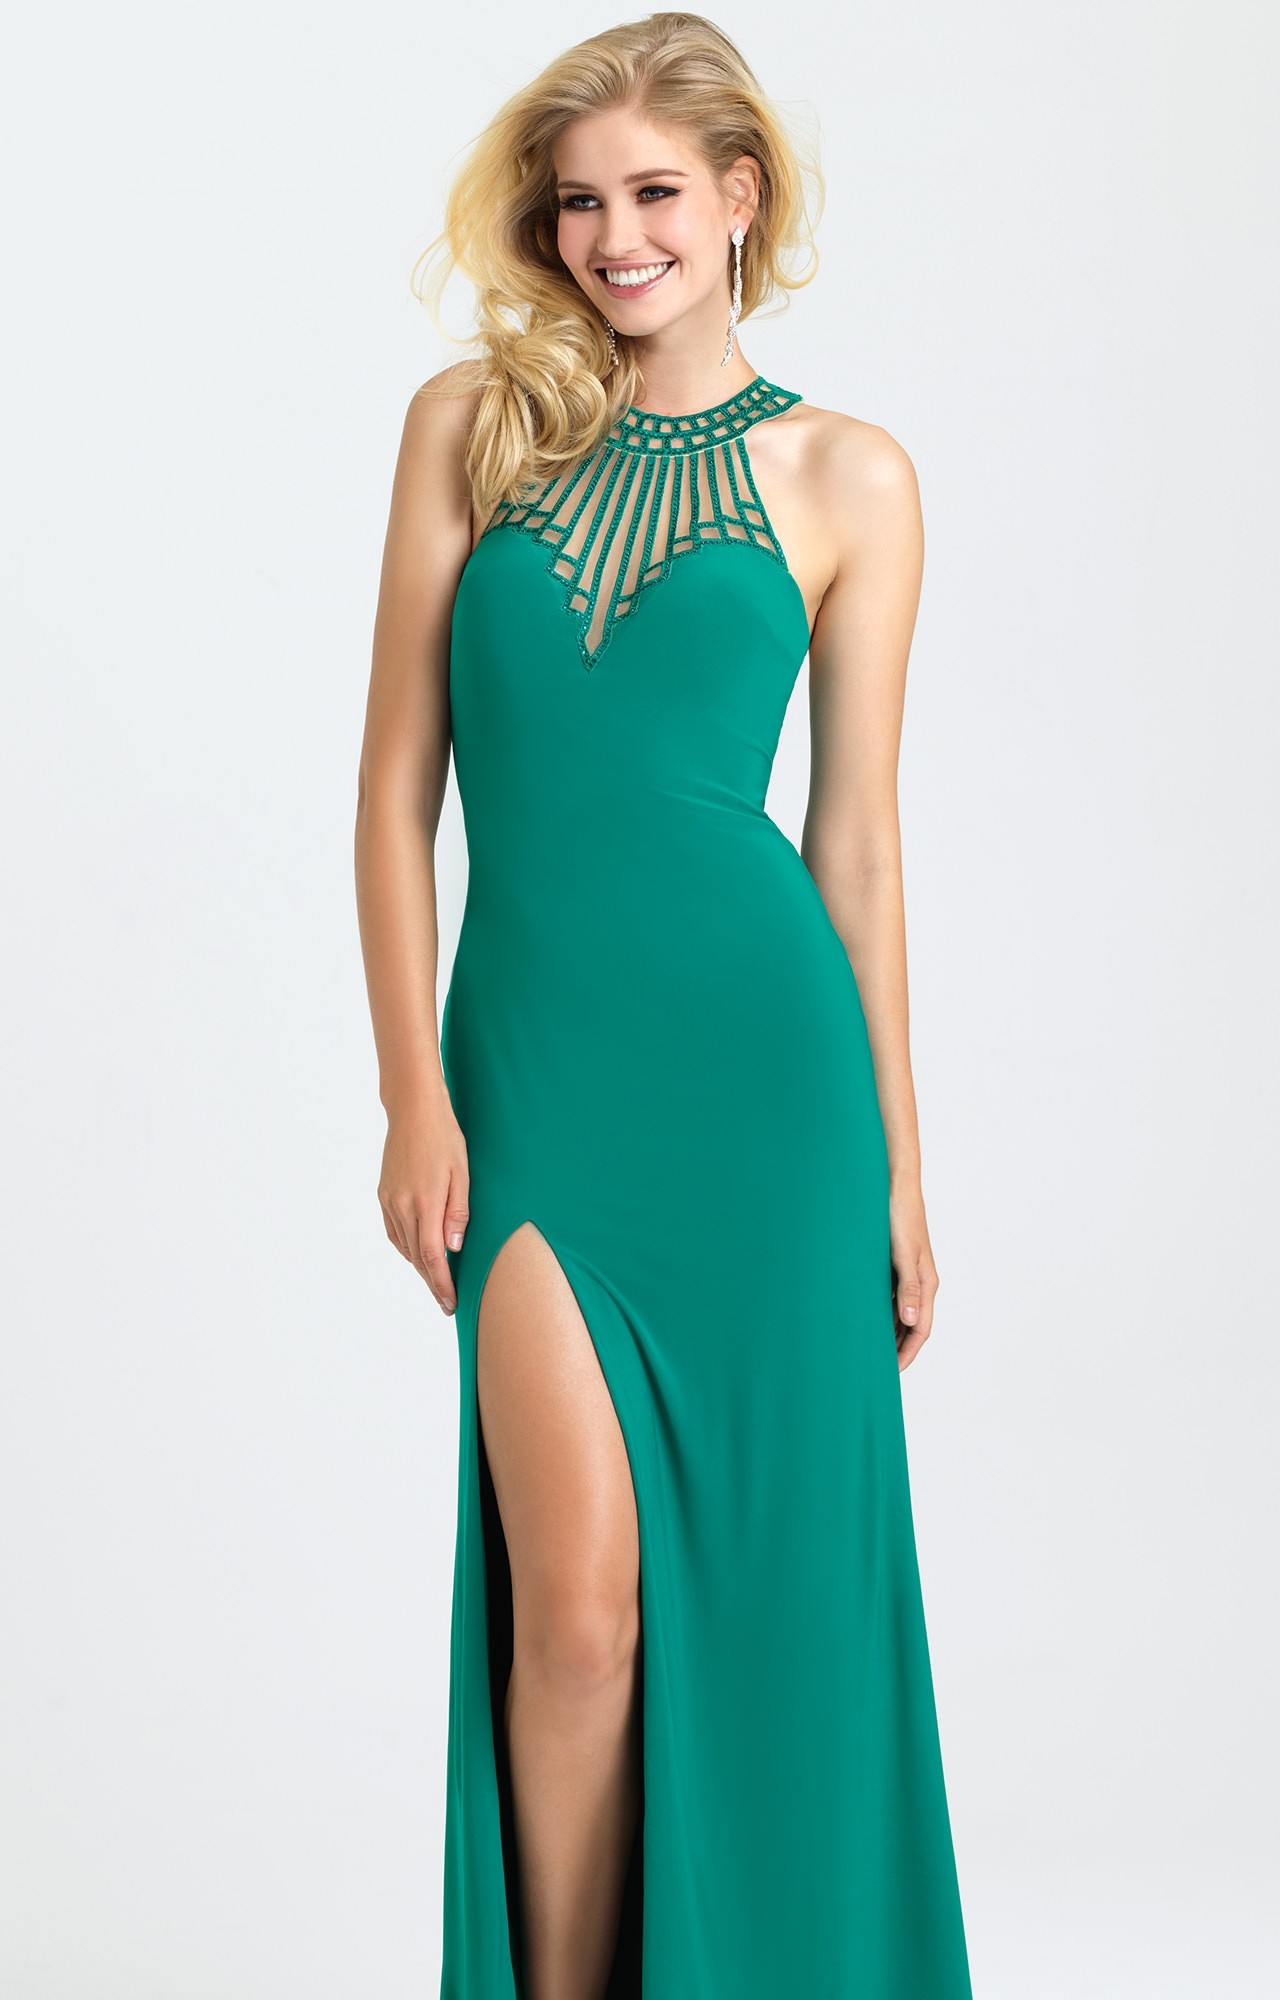 Madison James 16-402 - The Miss Congeniality Dress Prom Dress